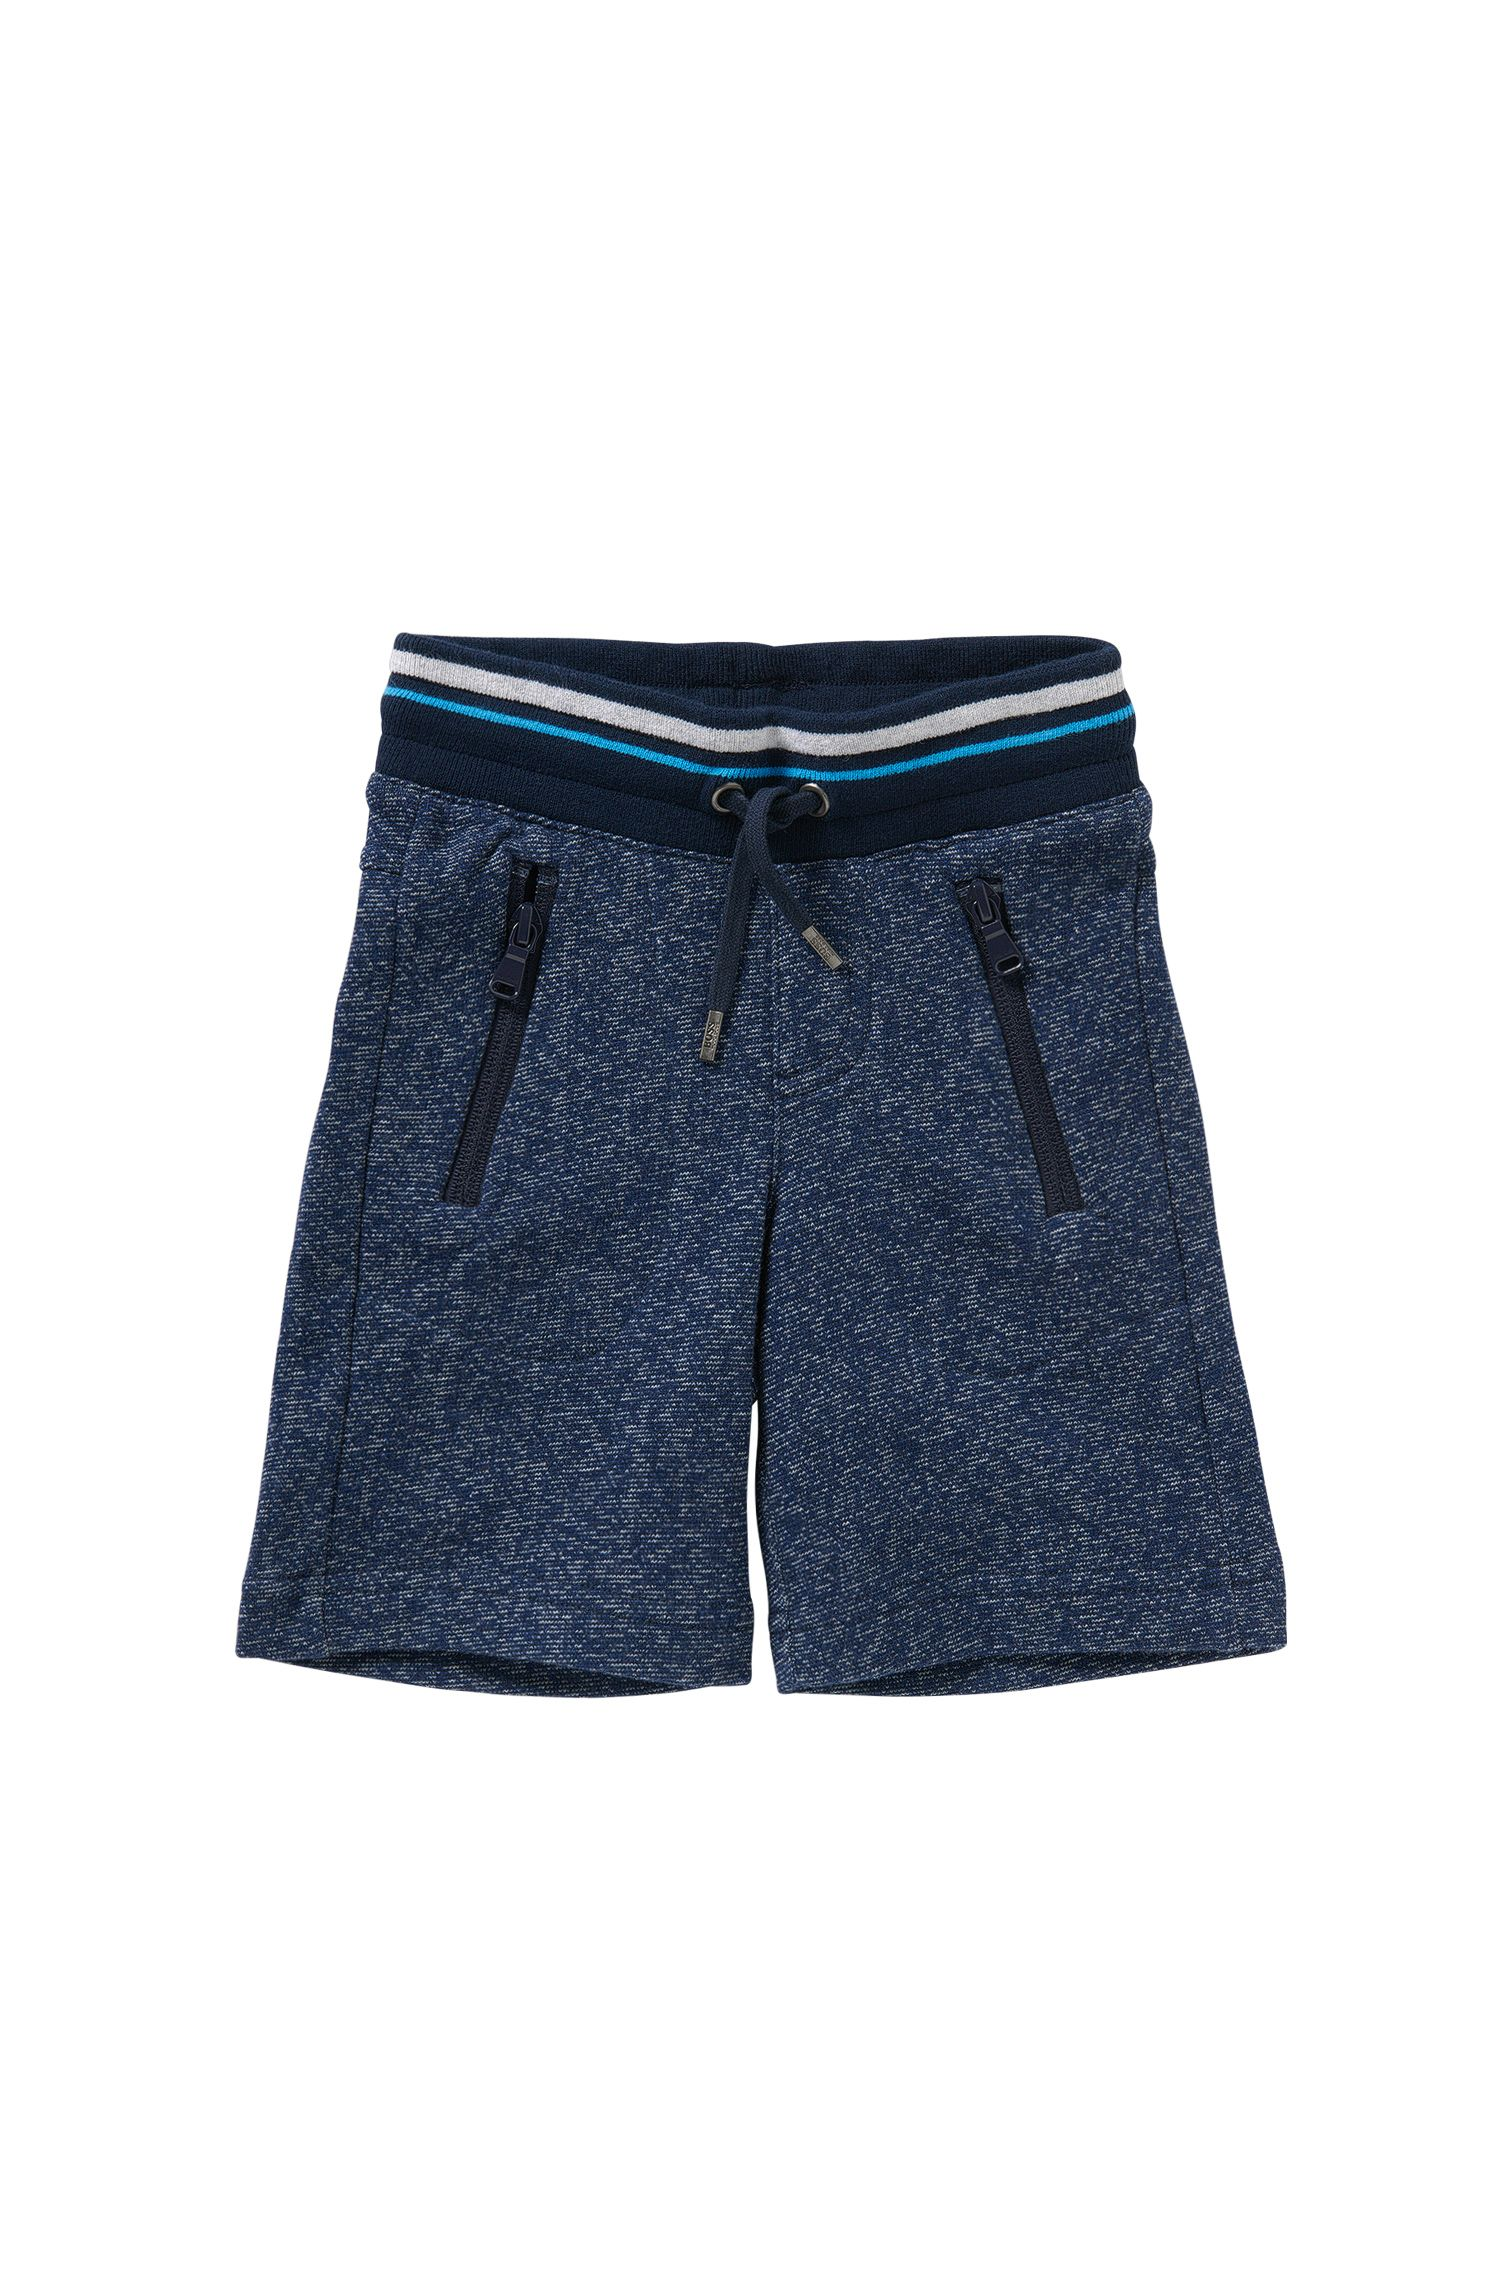 Kids' tracksuit bottoms in cotton with a drawstring: 'J24385'